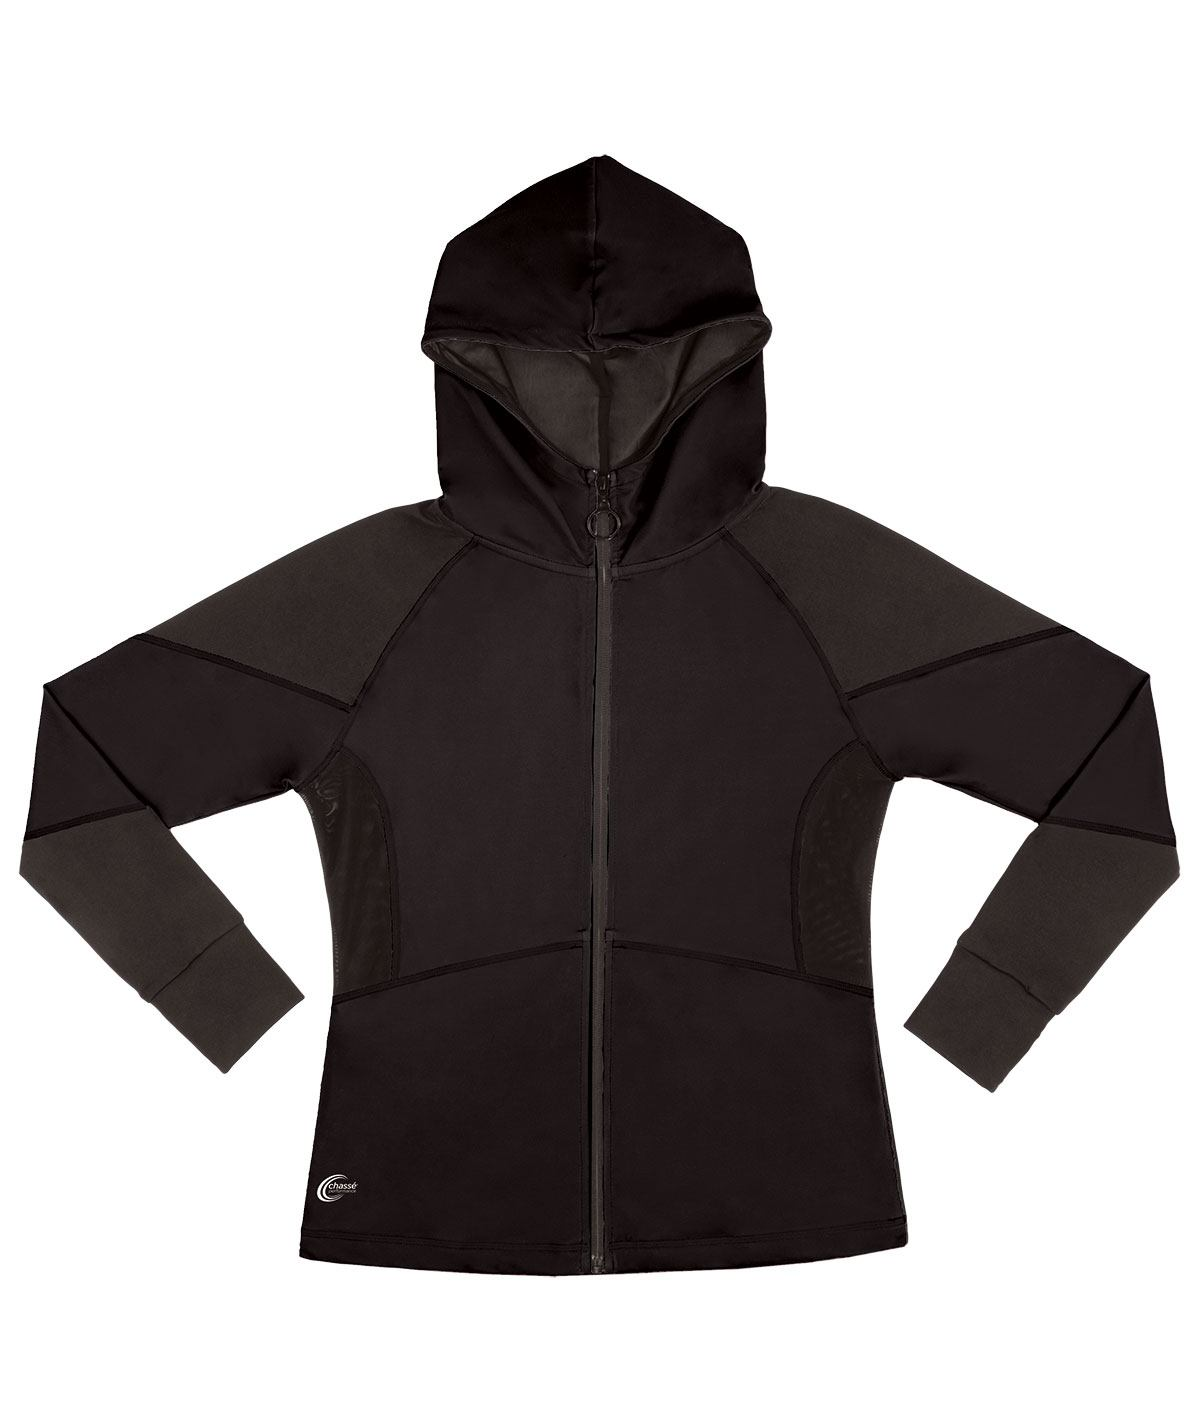 Chasse Performance All Star Jacket